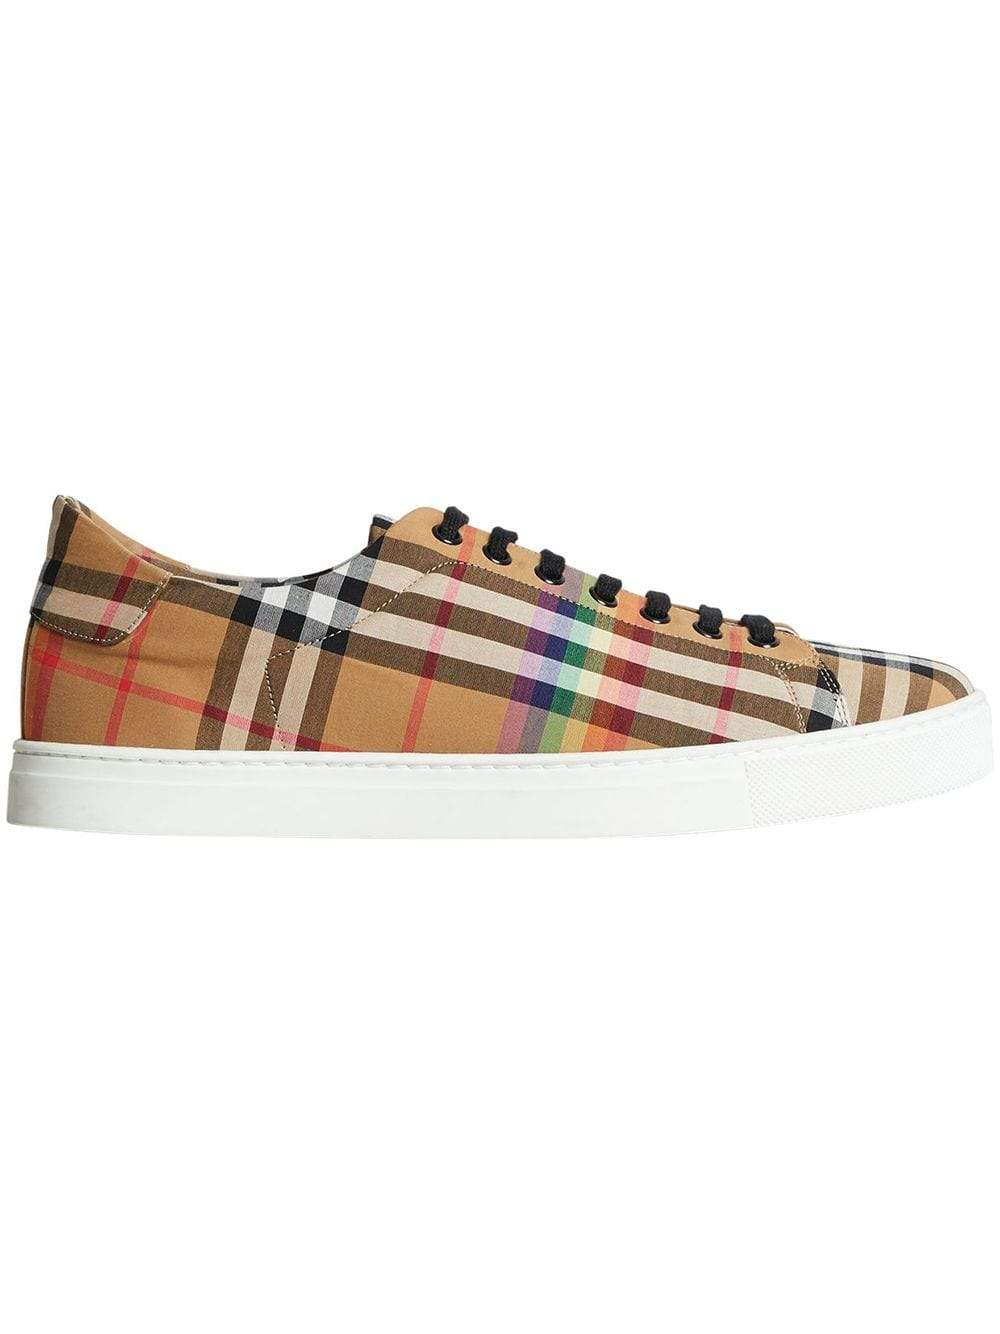 Burberry Rainbow Sneakers